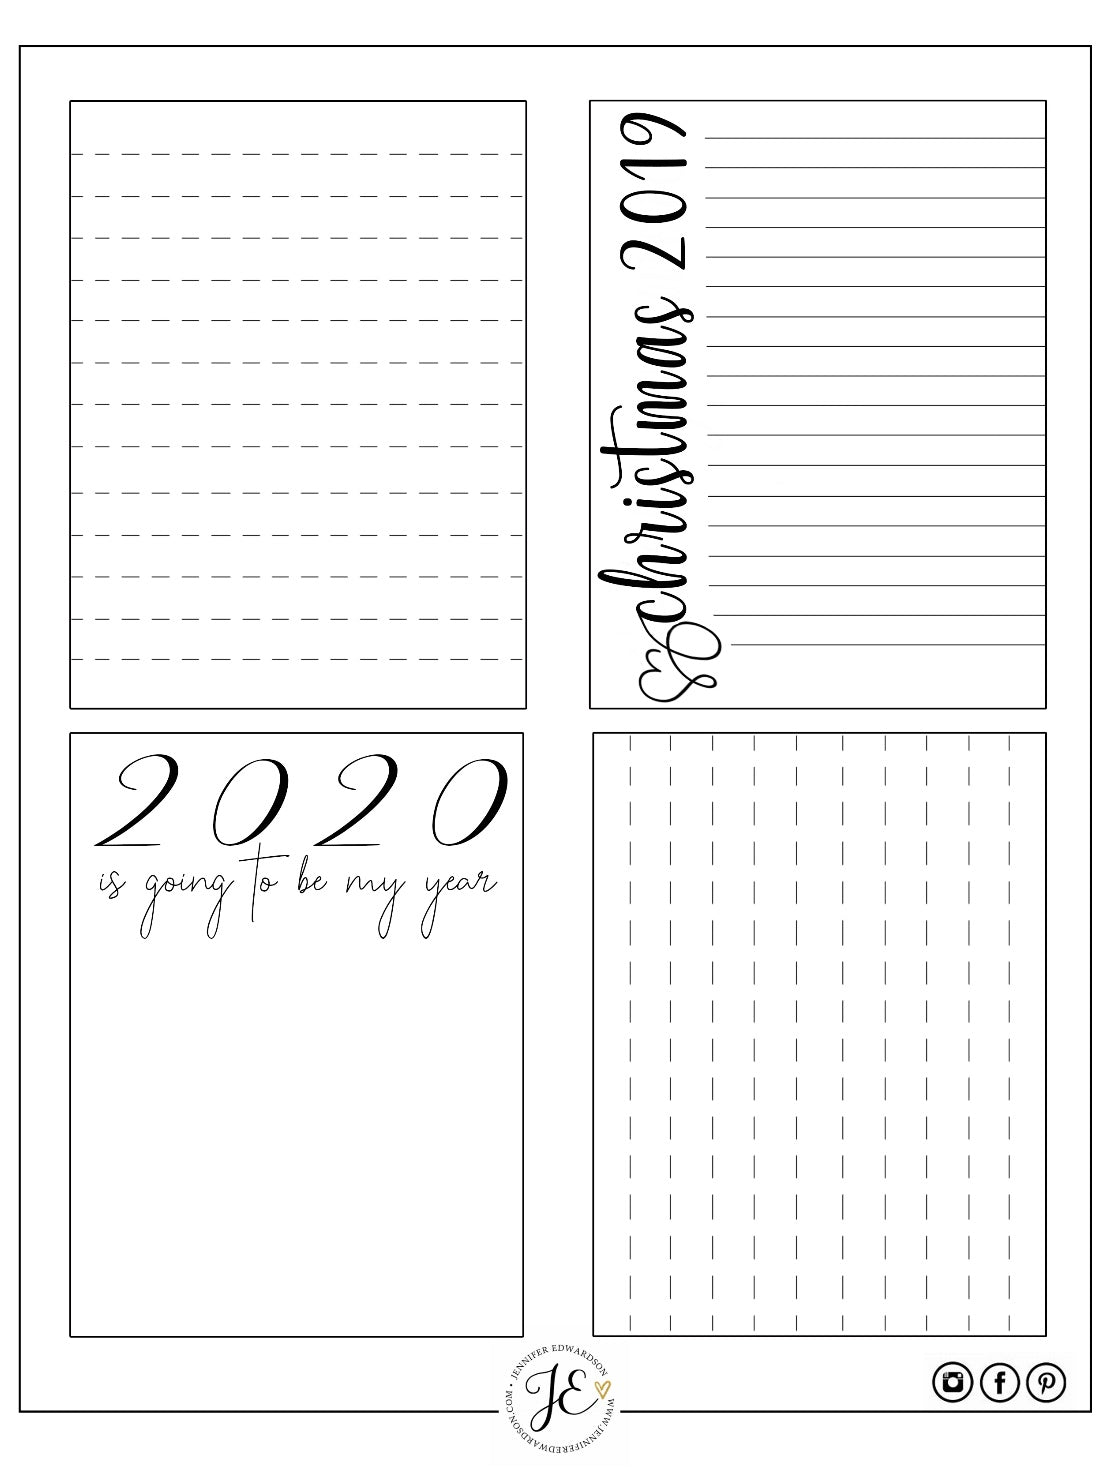 January 2020 Journal Cards